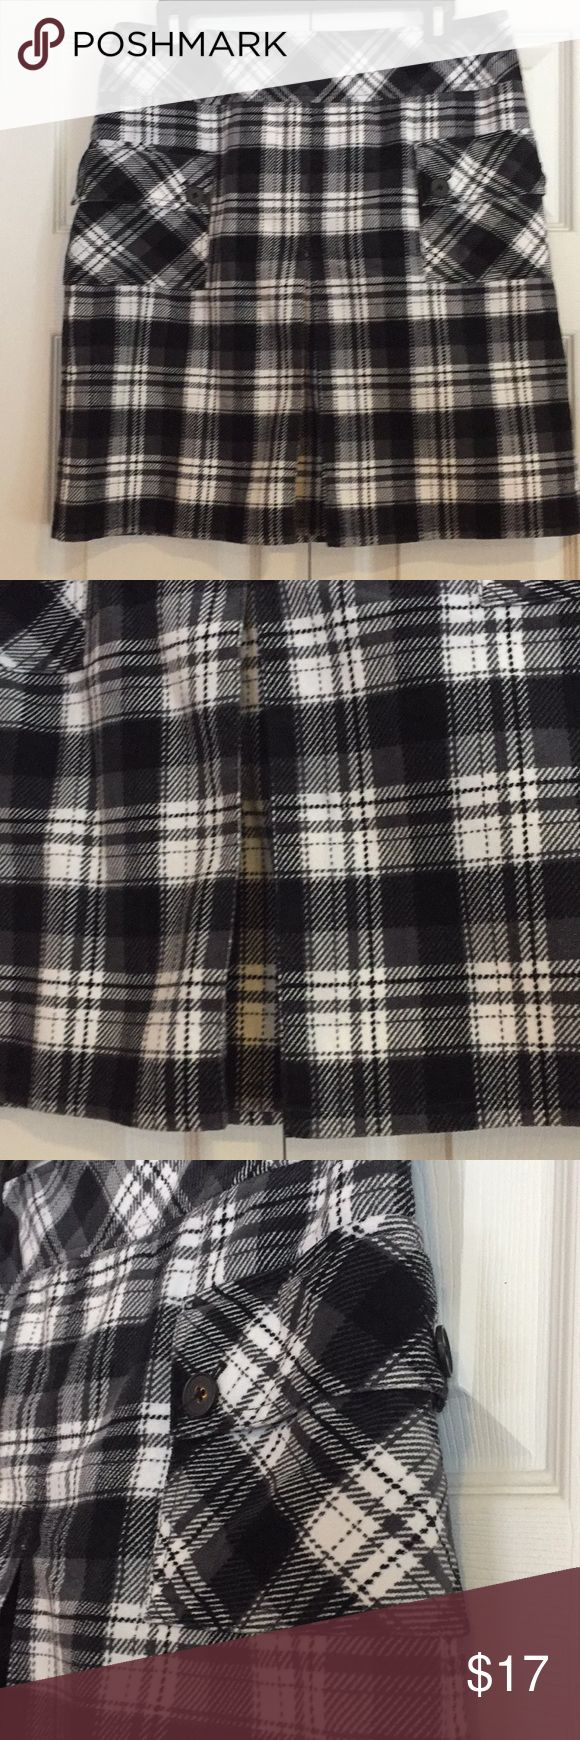 Anne Taylor Loft Plaid Skirt Size 8 Anne Taylor Loft Plaid Skirt Size 8; 100% Cotton; 2 pockets; back Zip with small fray tear at bottom of zipper (see picture); soft cotton; very cute Ann Taylor Loft Skirts Midi